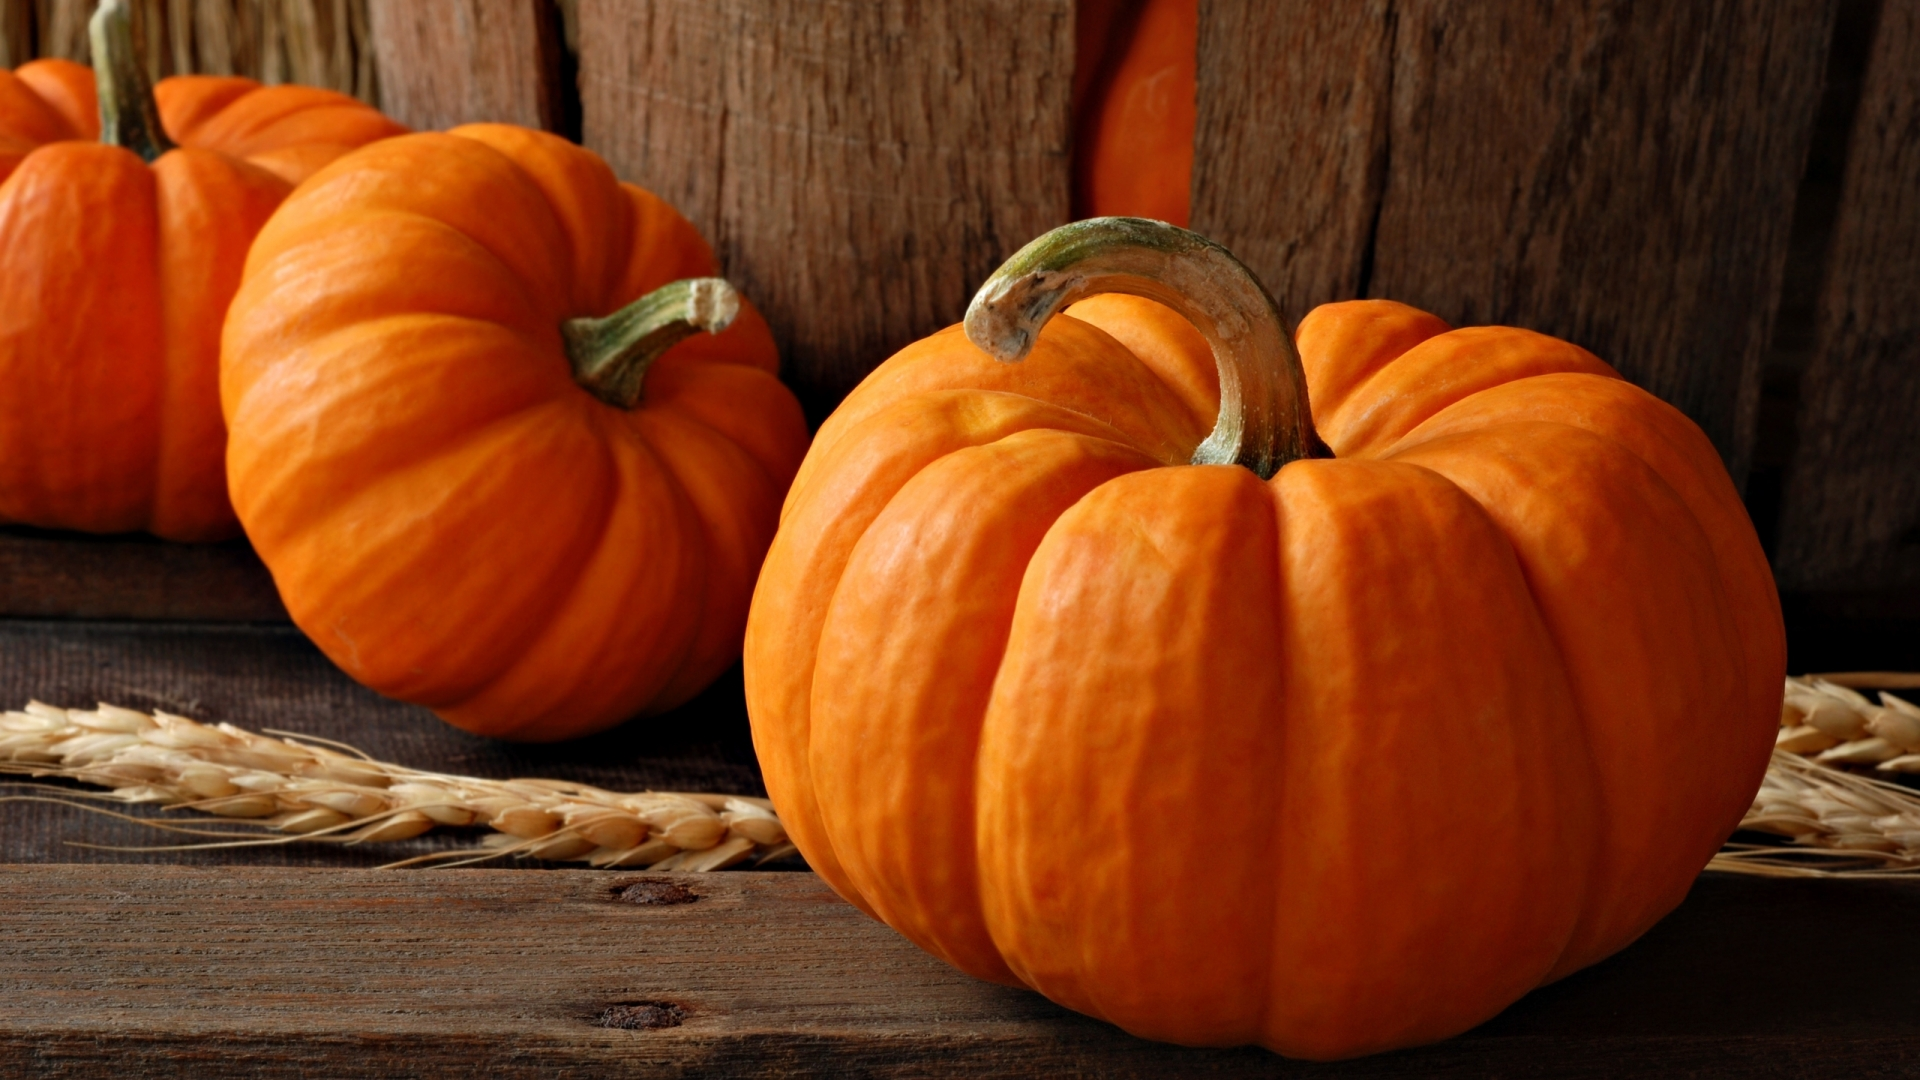 Pumpkin Wallpapers